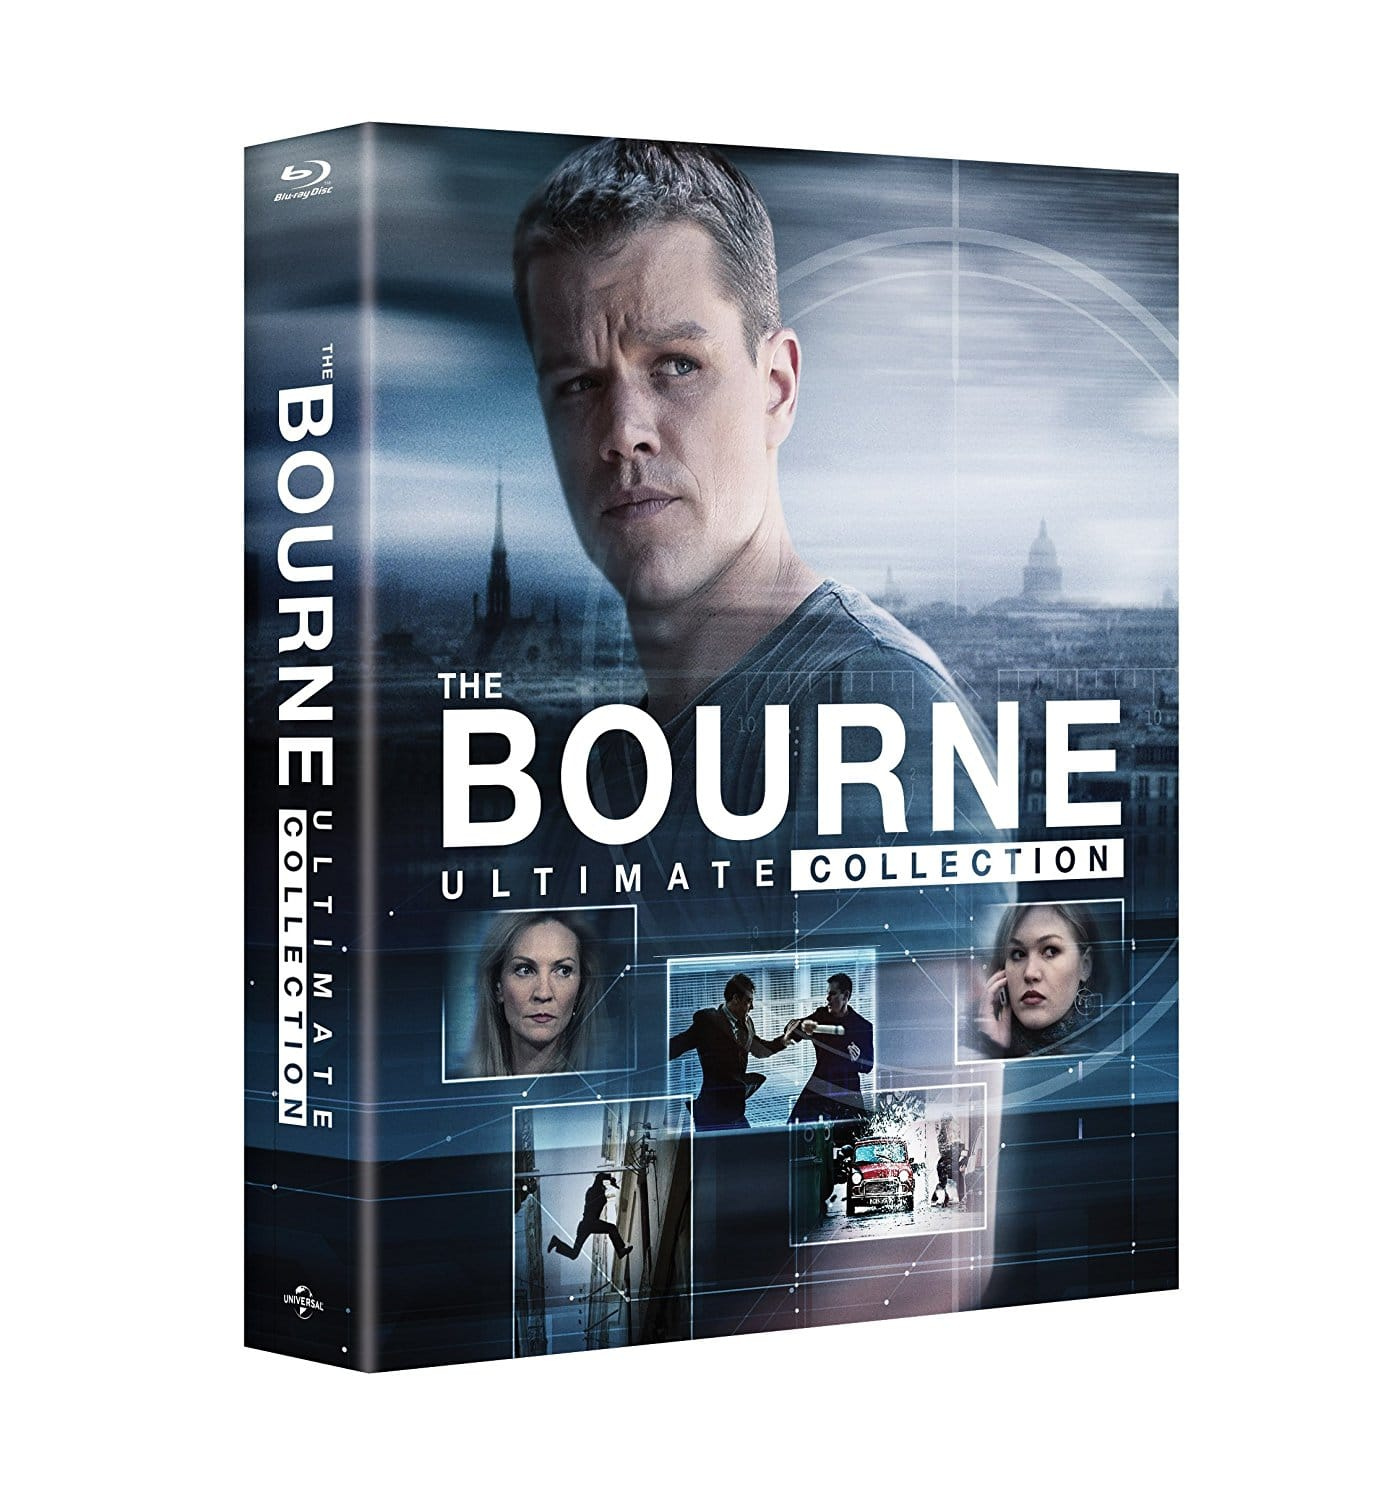 The Bourne Ultimate Collection (Blu-Ray) $19.99 w/ Fry's Friday 2/23 Promo Code + Free In-Store Pickup